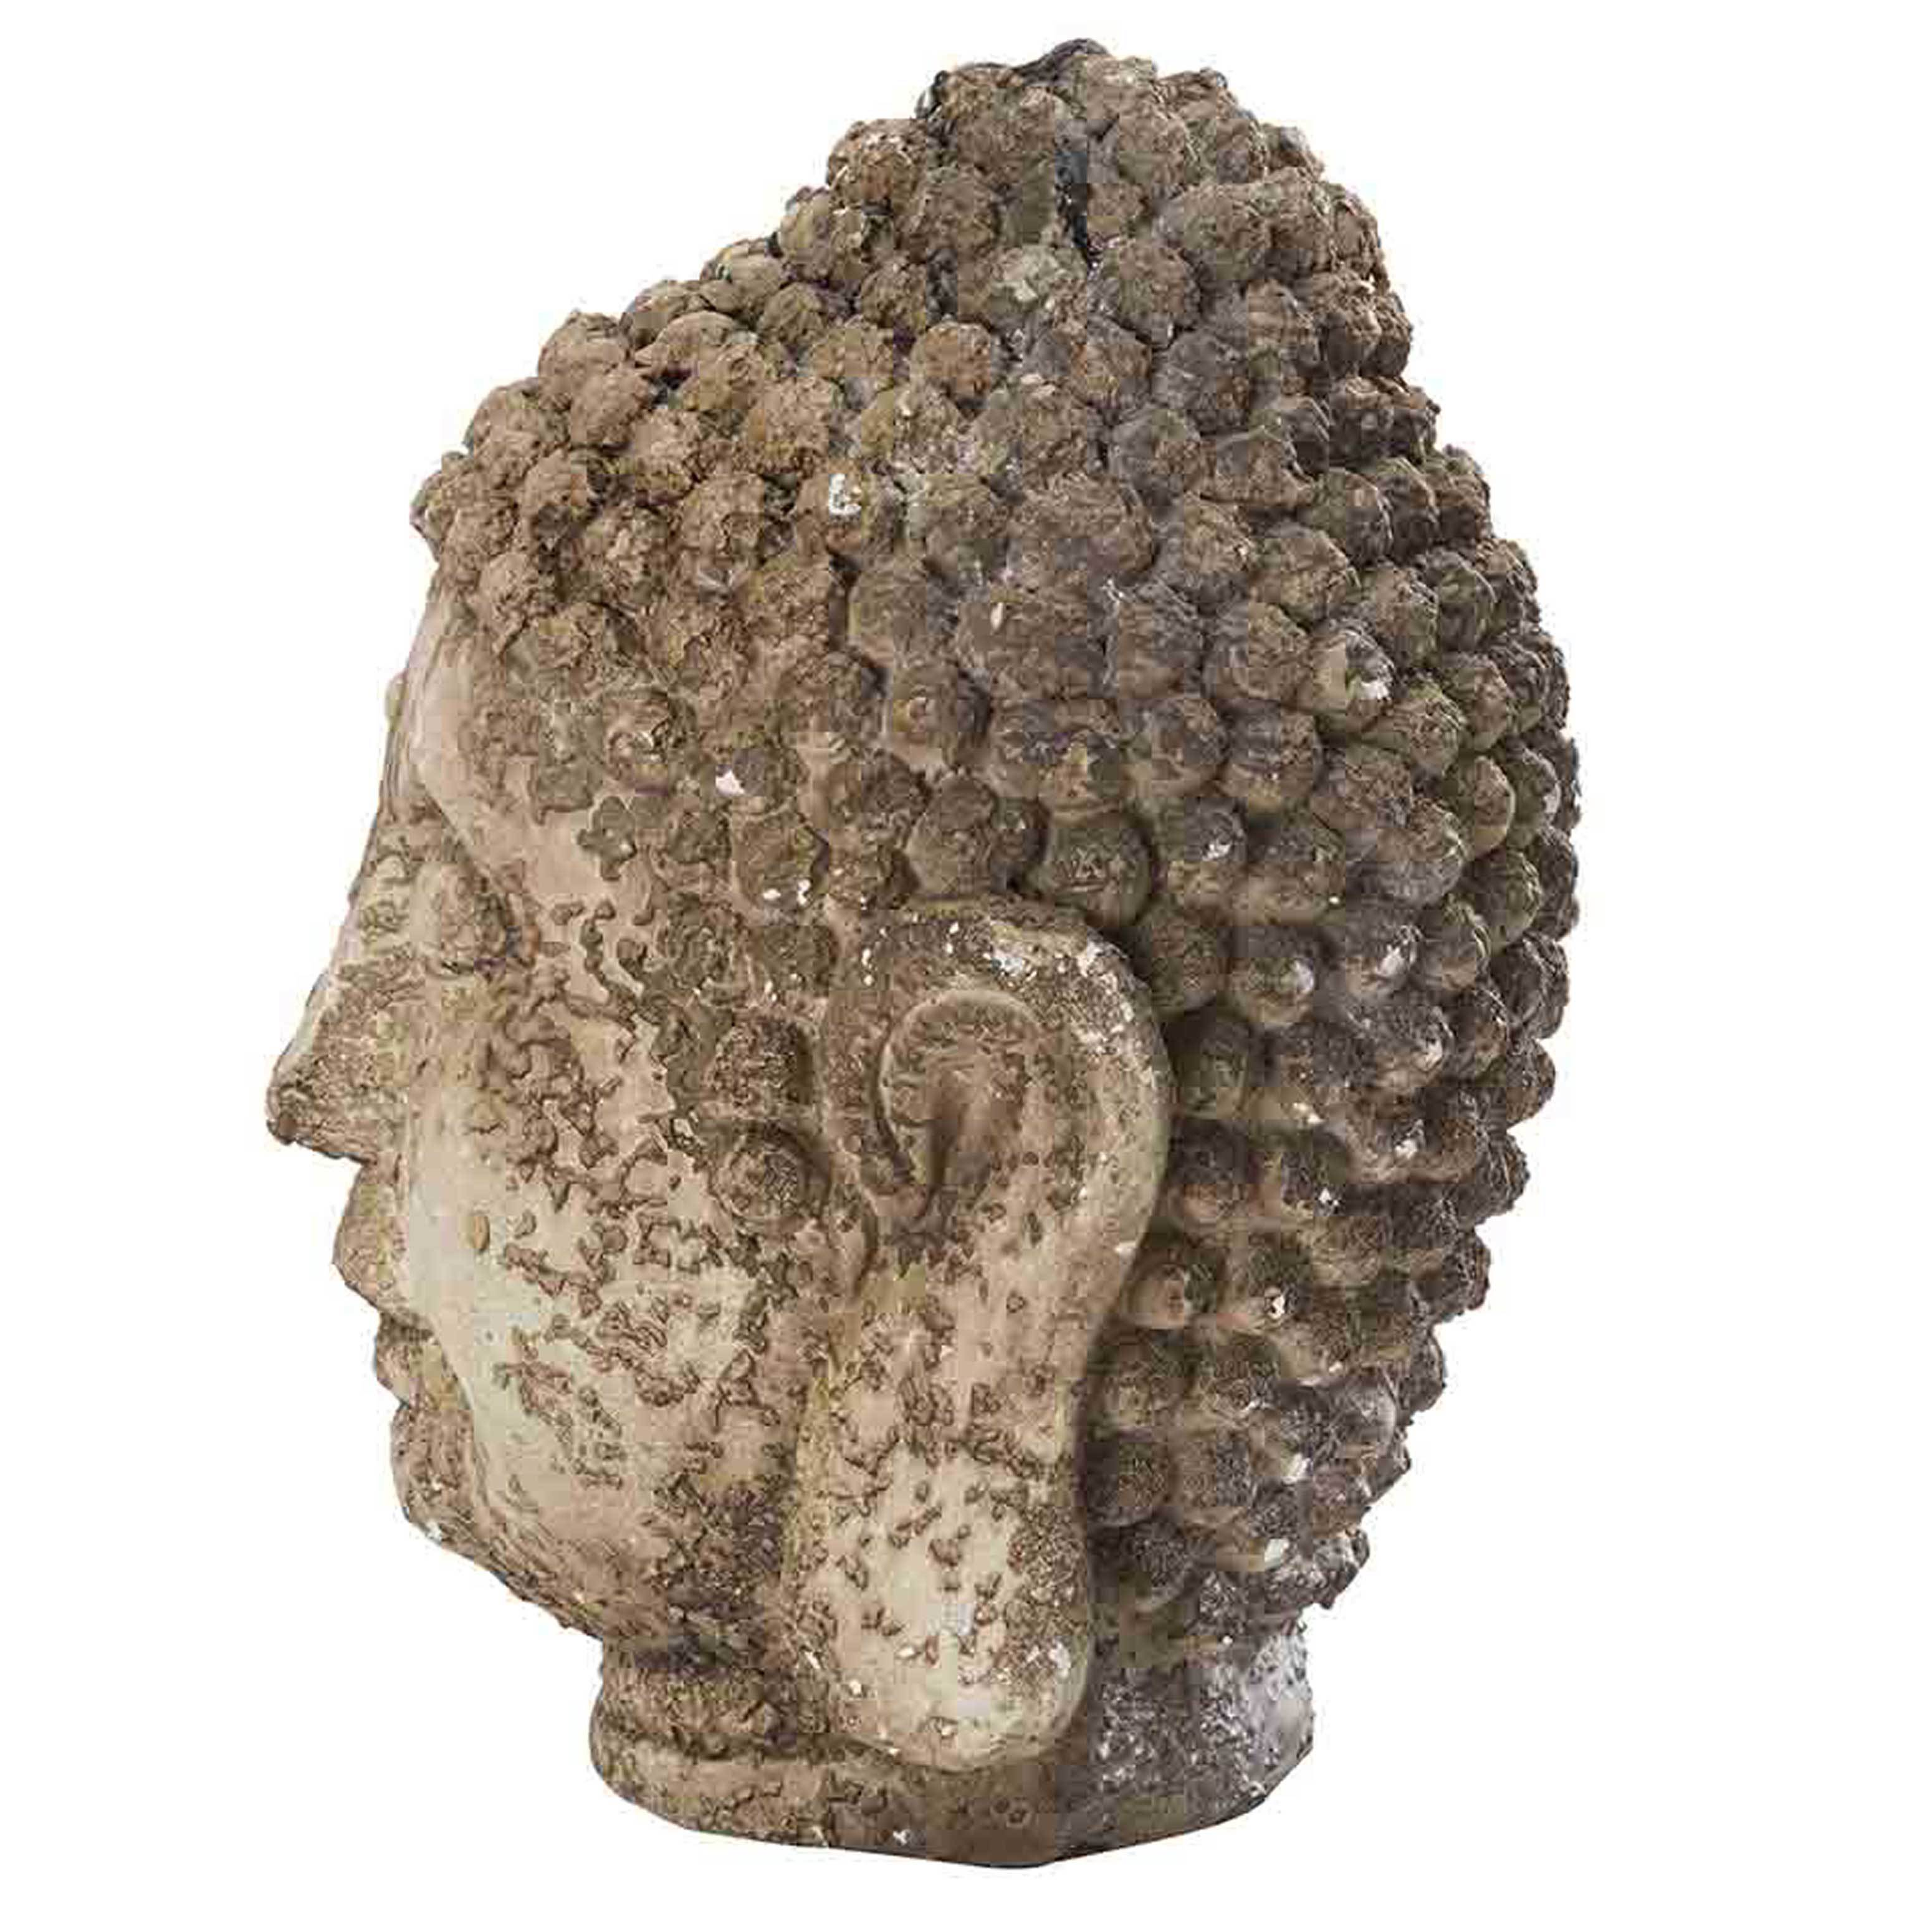 Shop Sunjoy Rustic Garden Buda Statue, 17 Inch, Resin   Free Shipping Today    Overstock.com   11599194